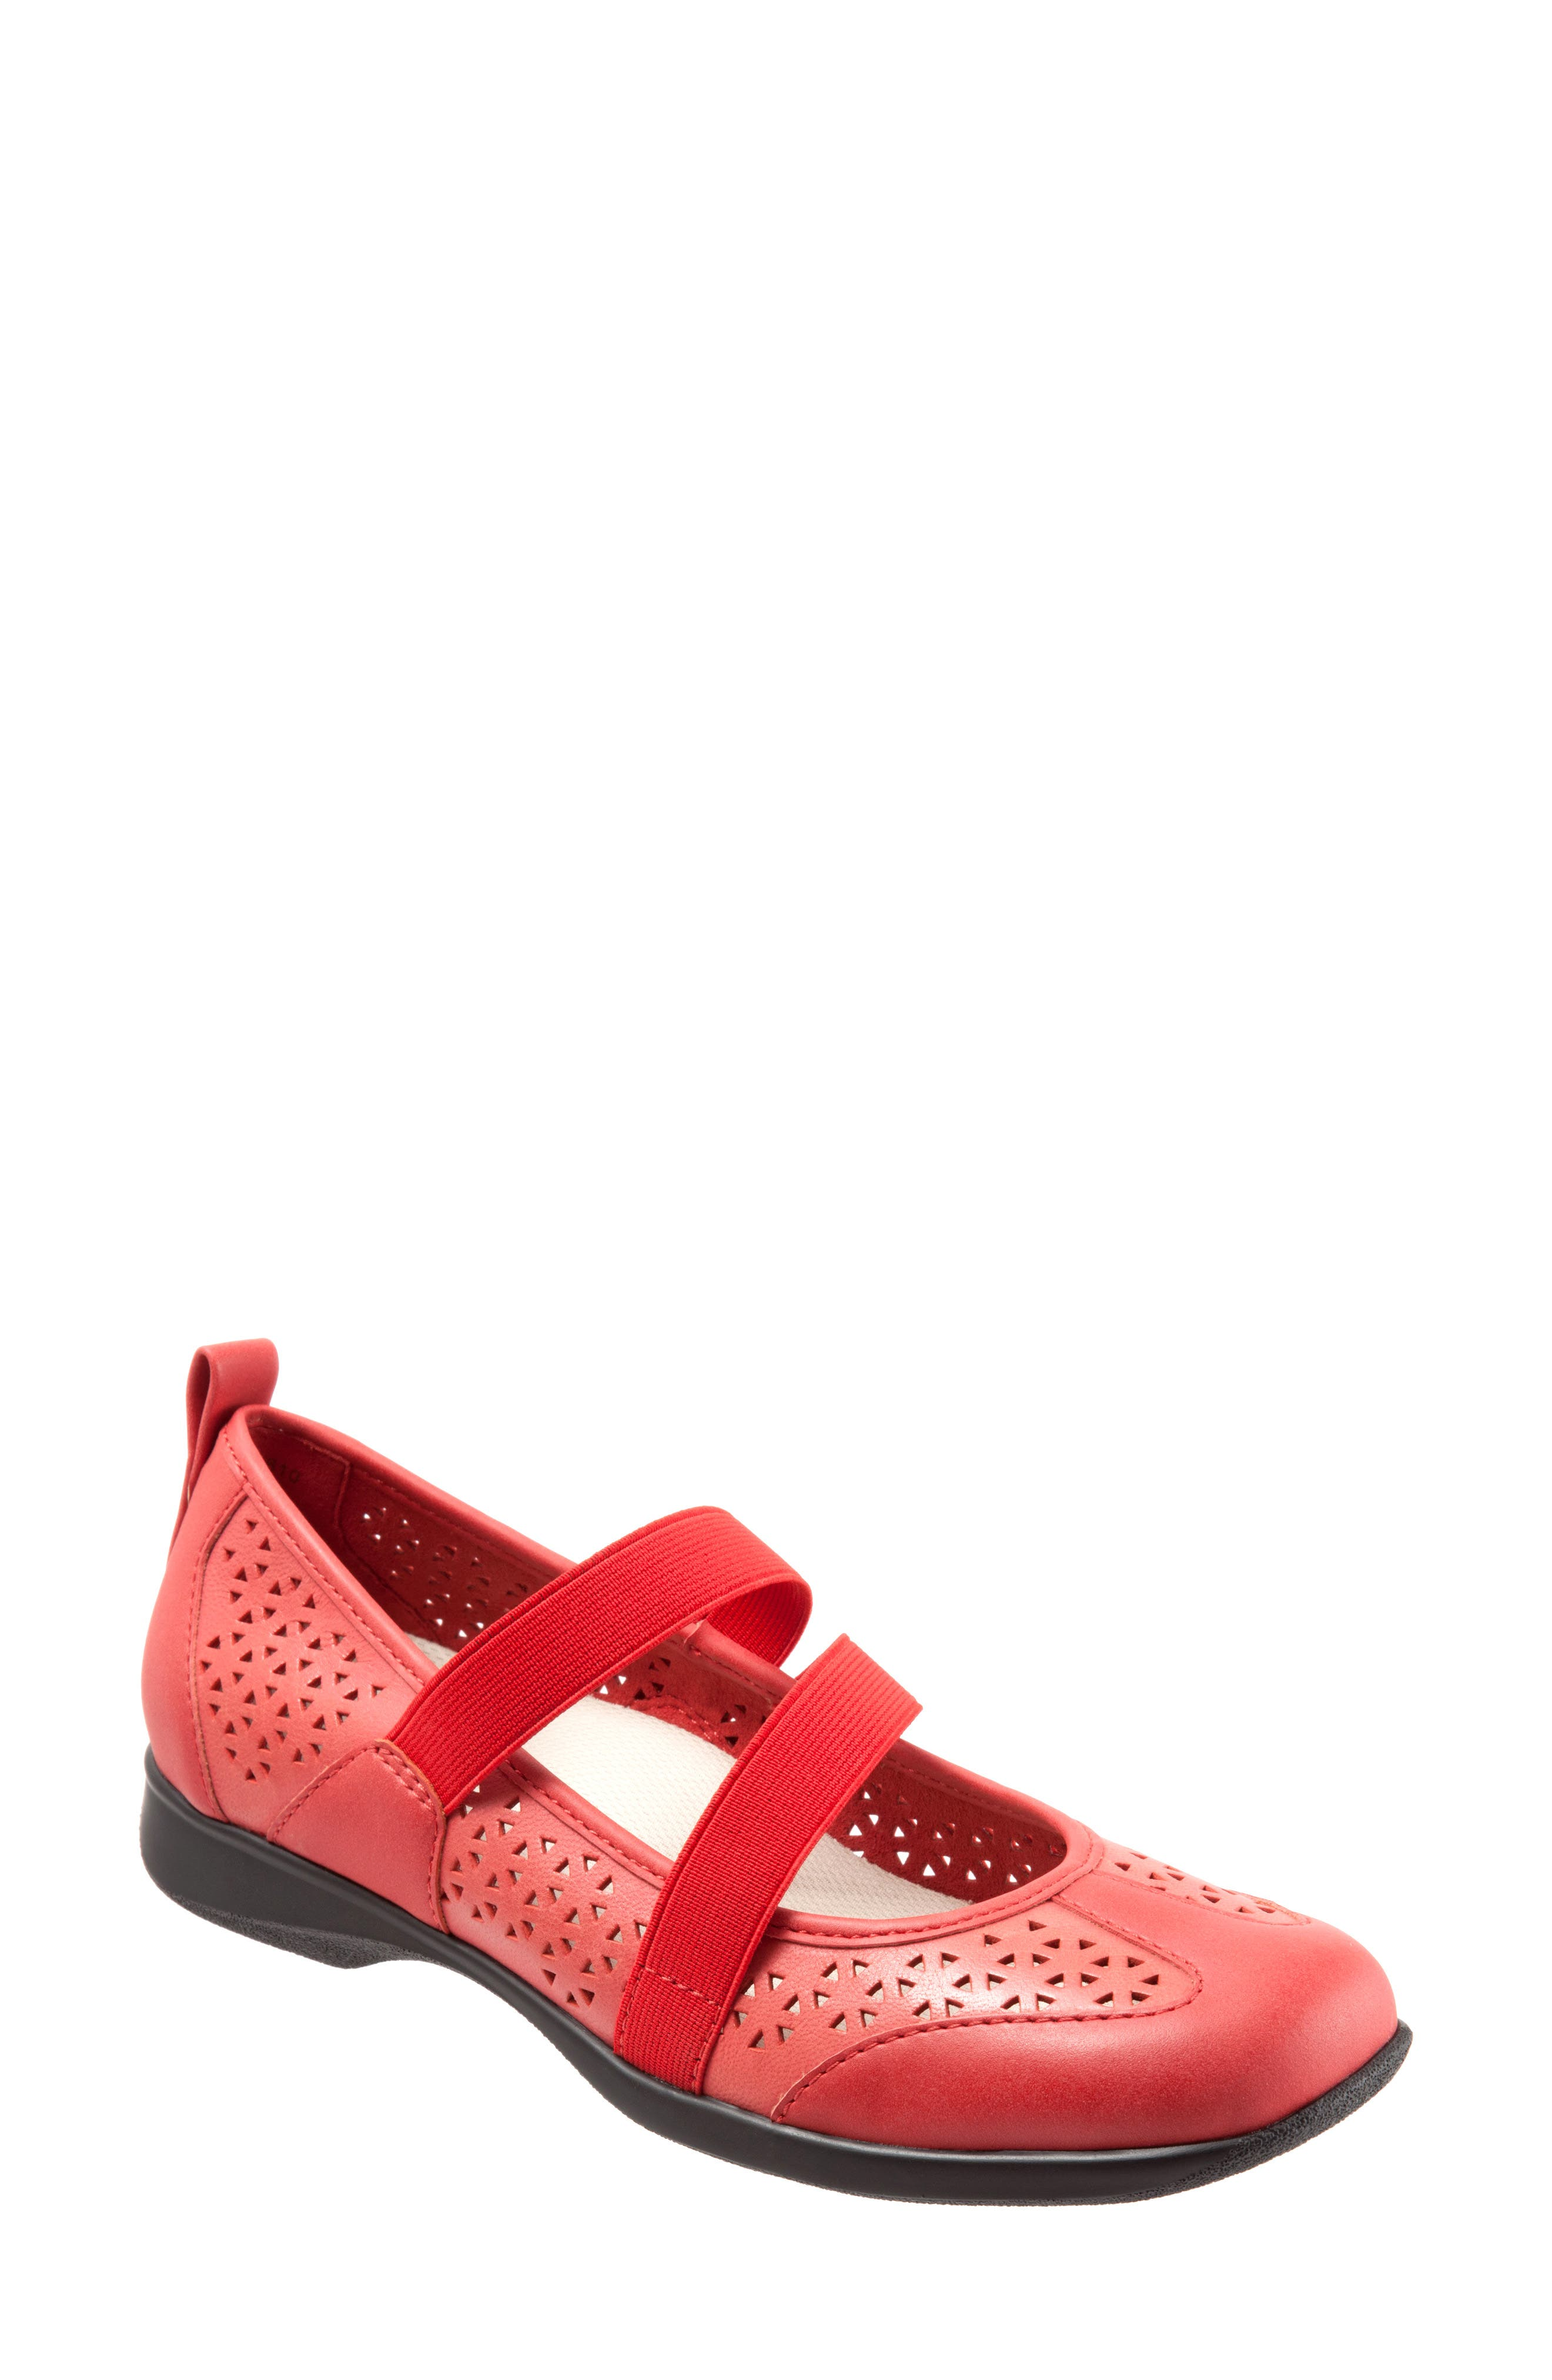 Josie Flat,                         Main,                         color, Red Leather